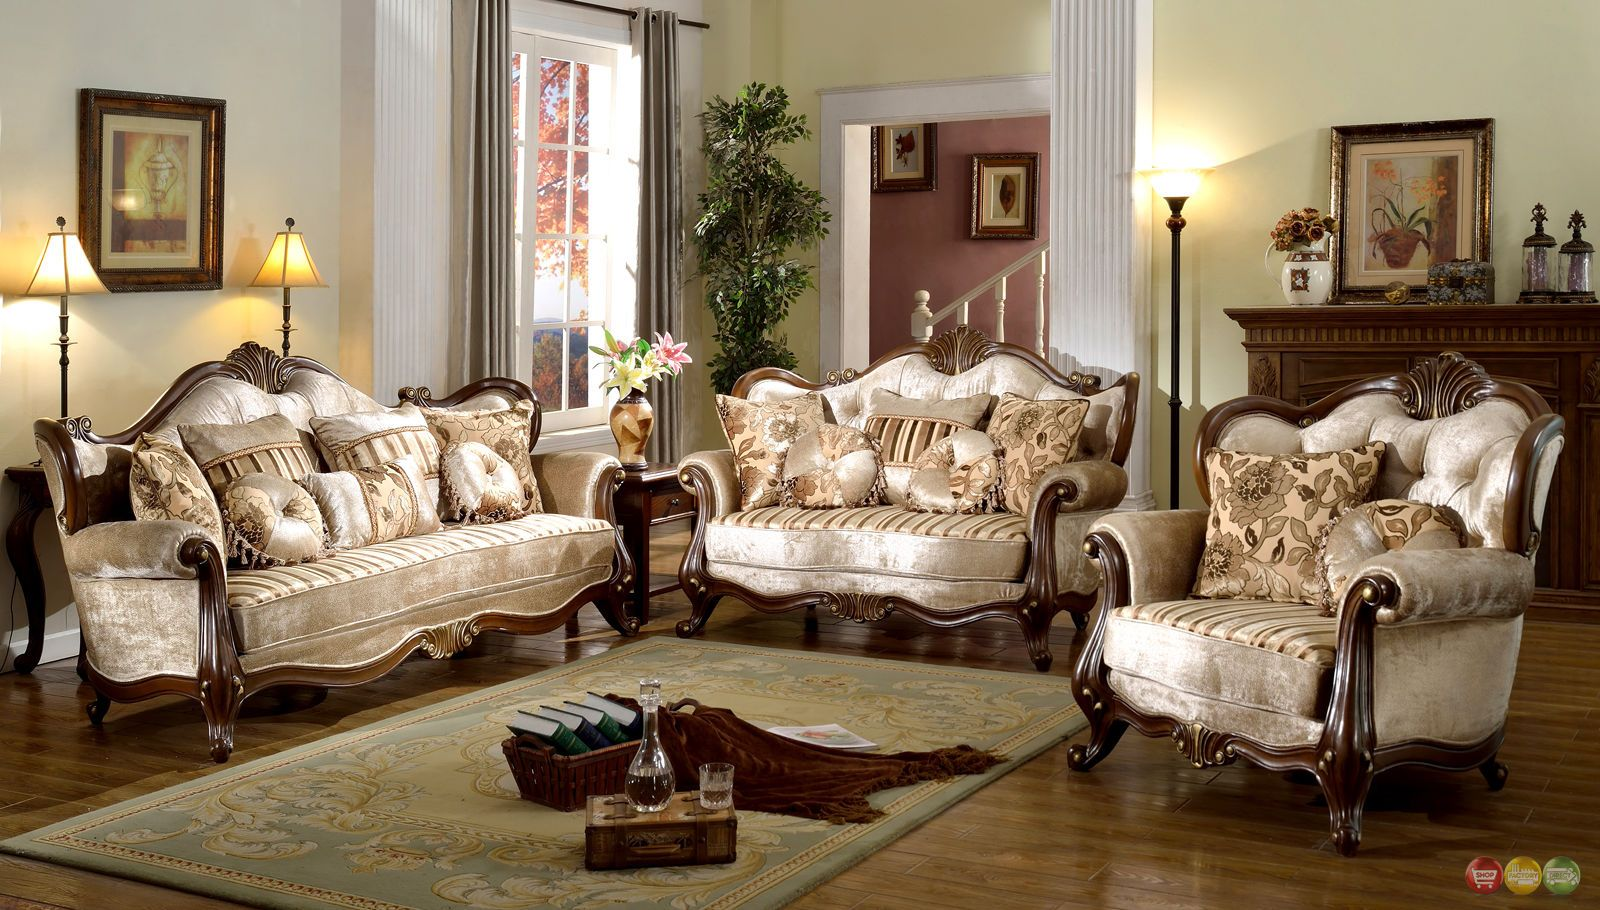 French Provincial Formal Antique Style 2pc Sofa Loveseat Set In Beige Chenille Ebay Living Room Sofa Set Antique Living Rooms Antique Furniture Living Room